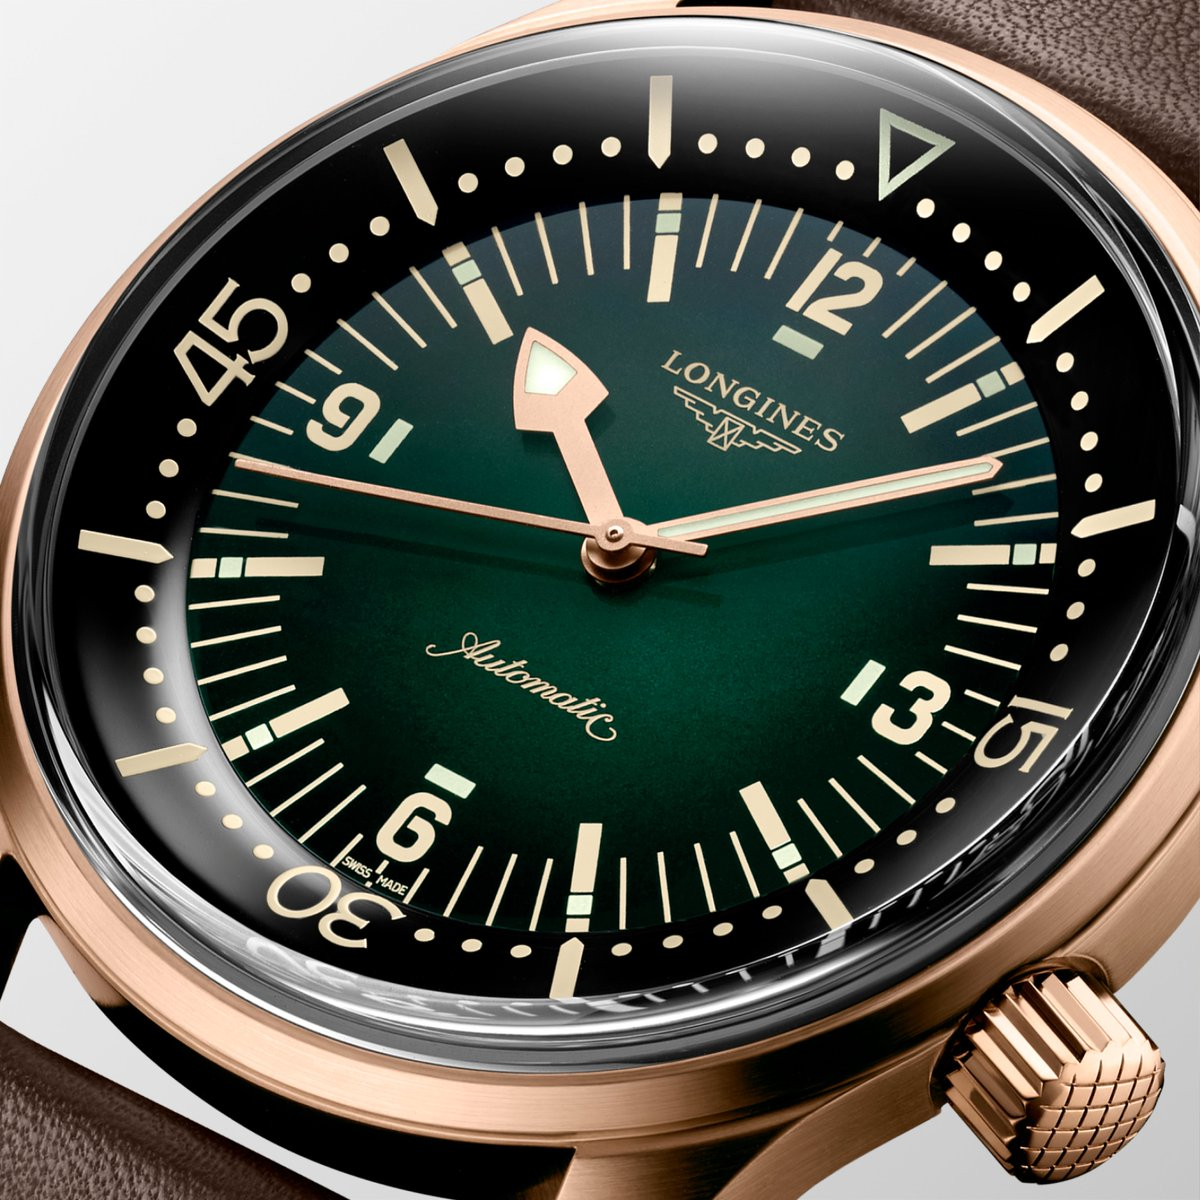 Bronze is a living material which becomes more beautiful with time, making each timepiece unique. #EleganceisanAttitude  #LegendDiver https://t.co/q6TBKjgGoN